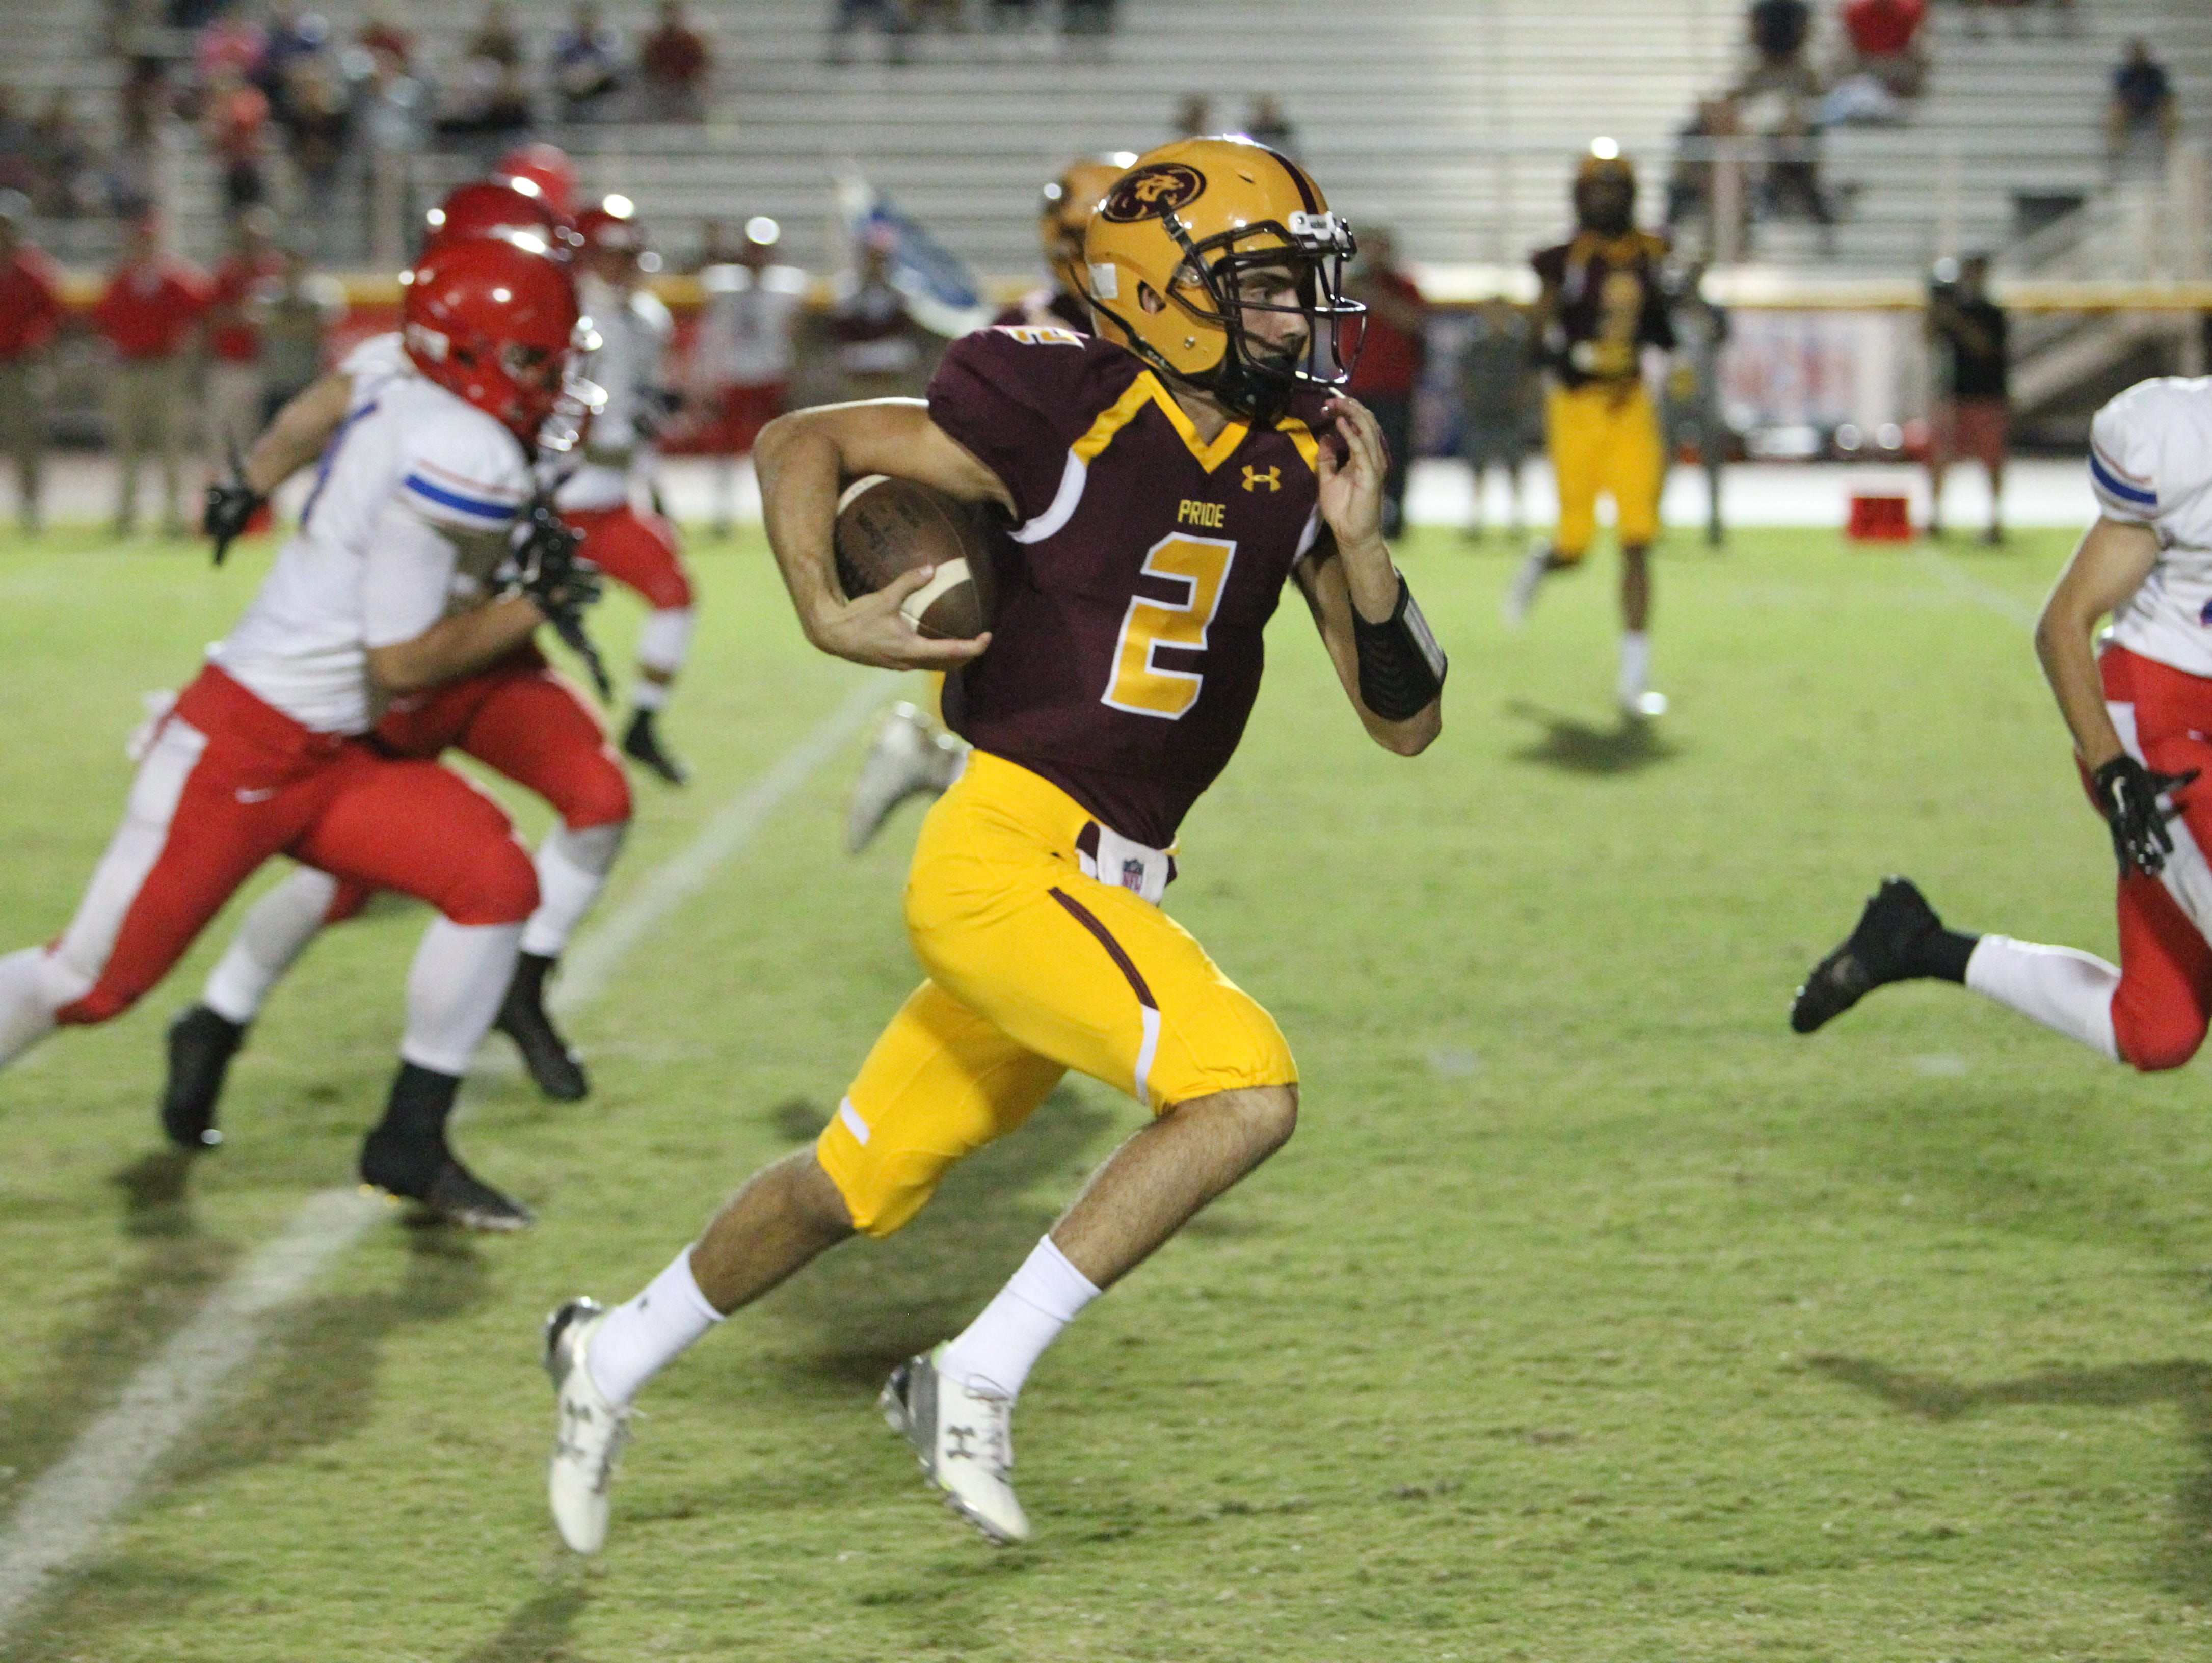 Mountain Pointe football continues to roll. Where are they ranked this week?